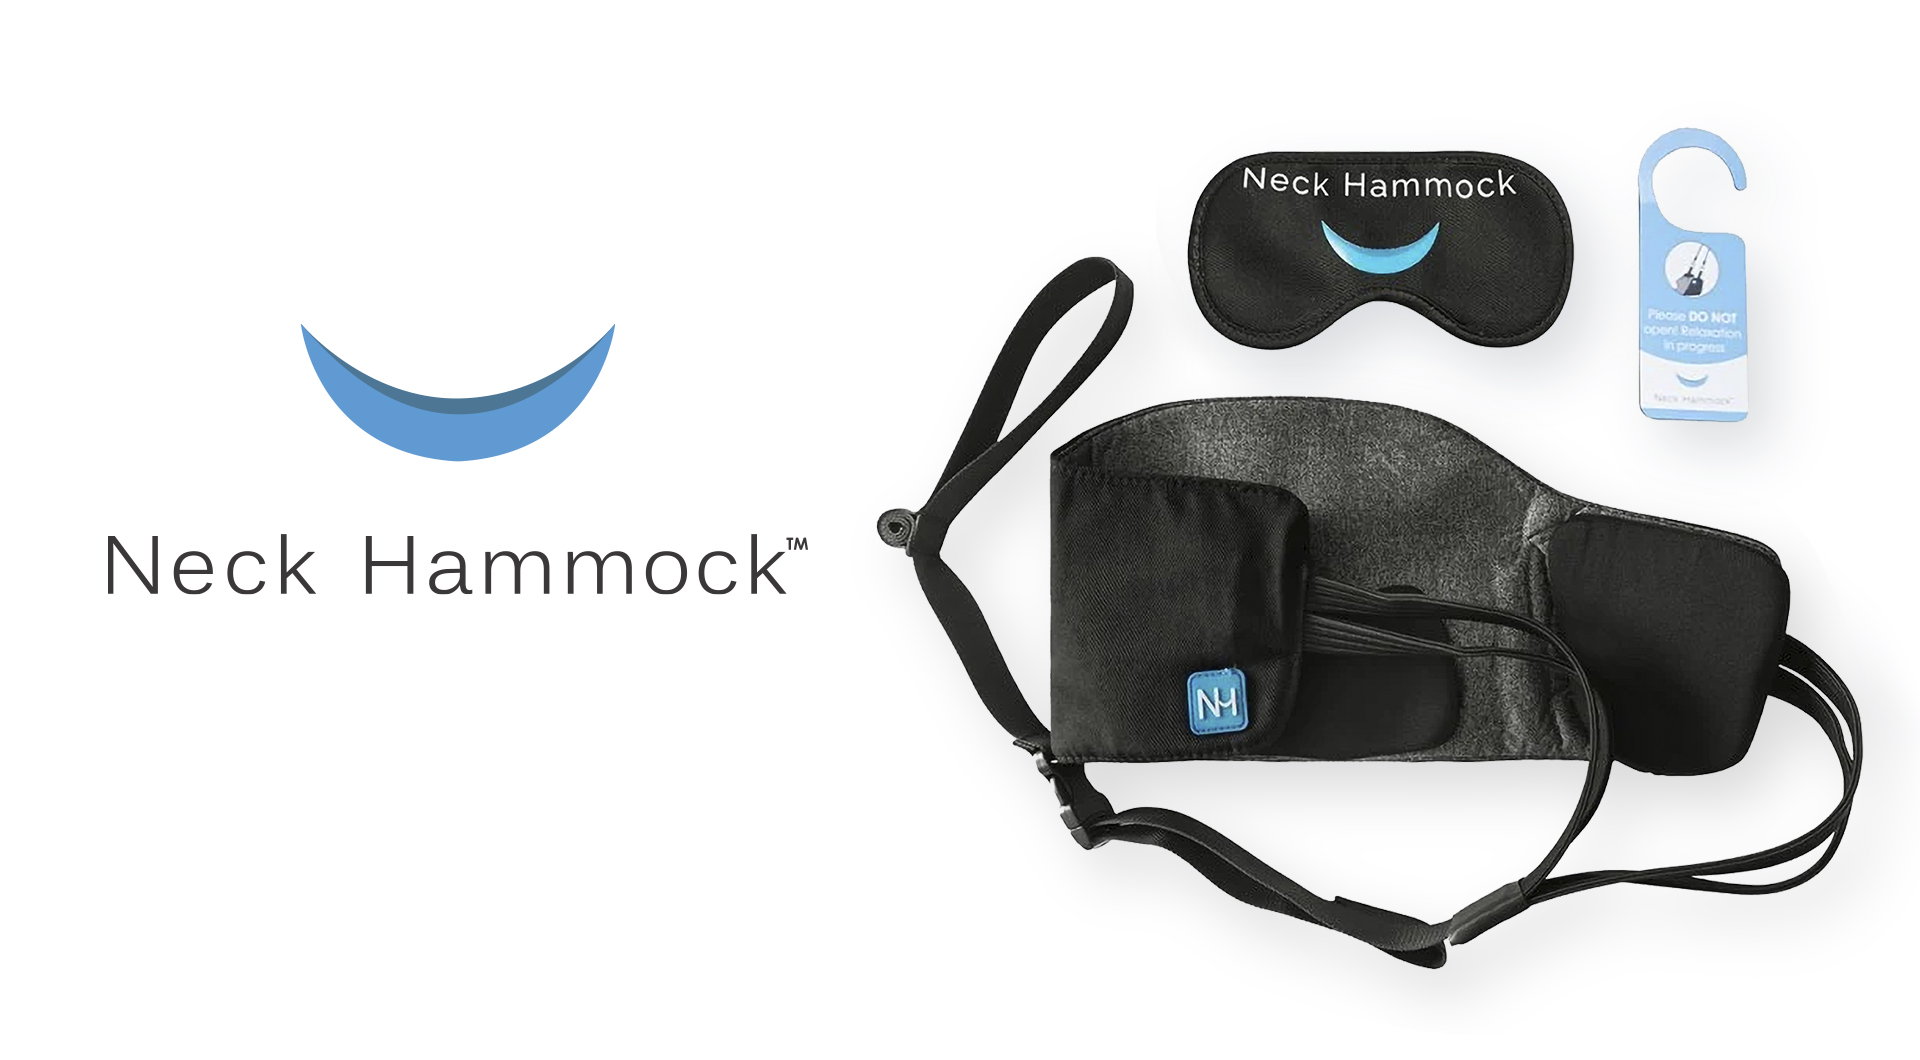 Features of Neck Hammock